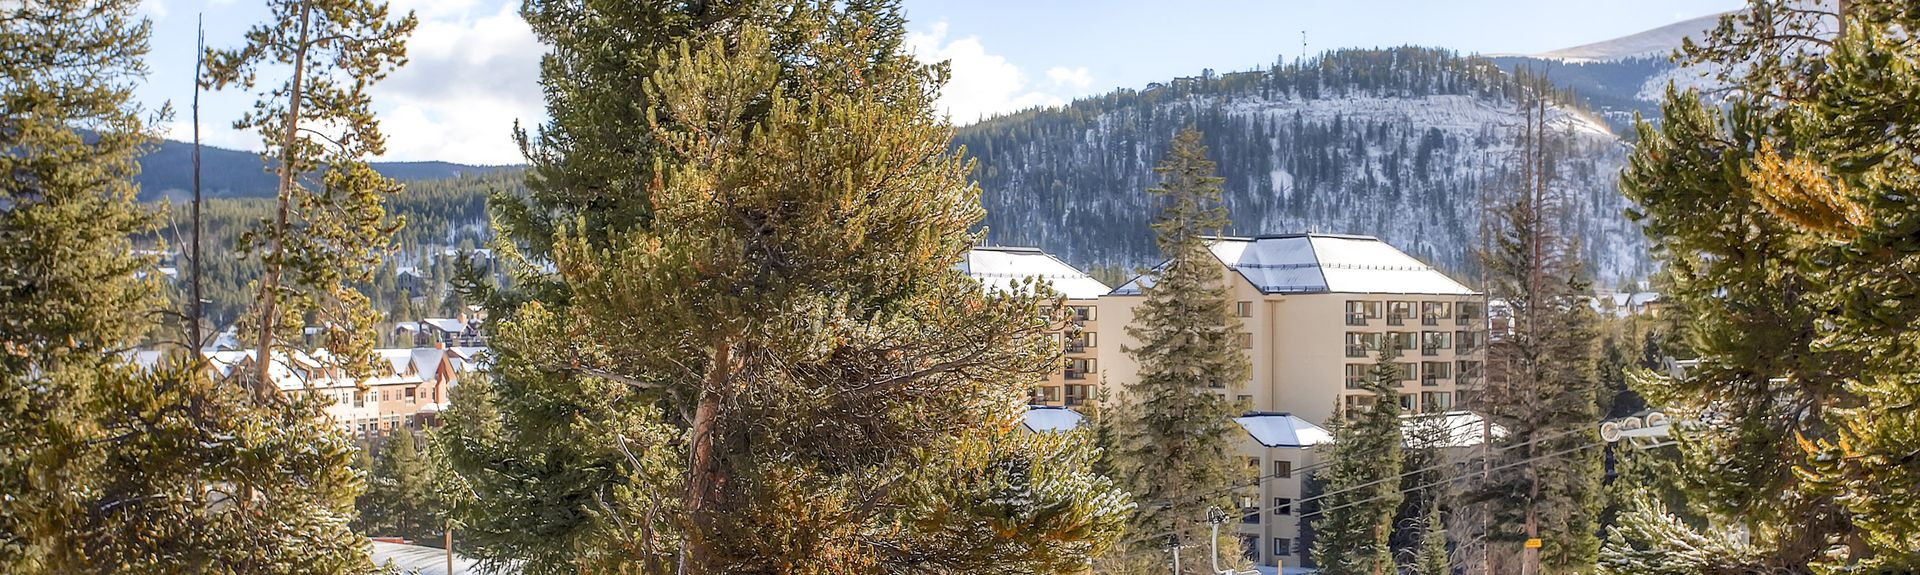 Cedars Townhomes, Breckenridge, CO, USA